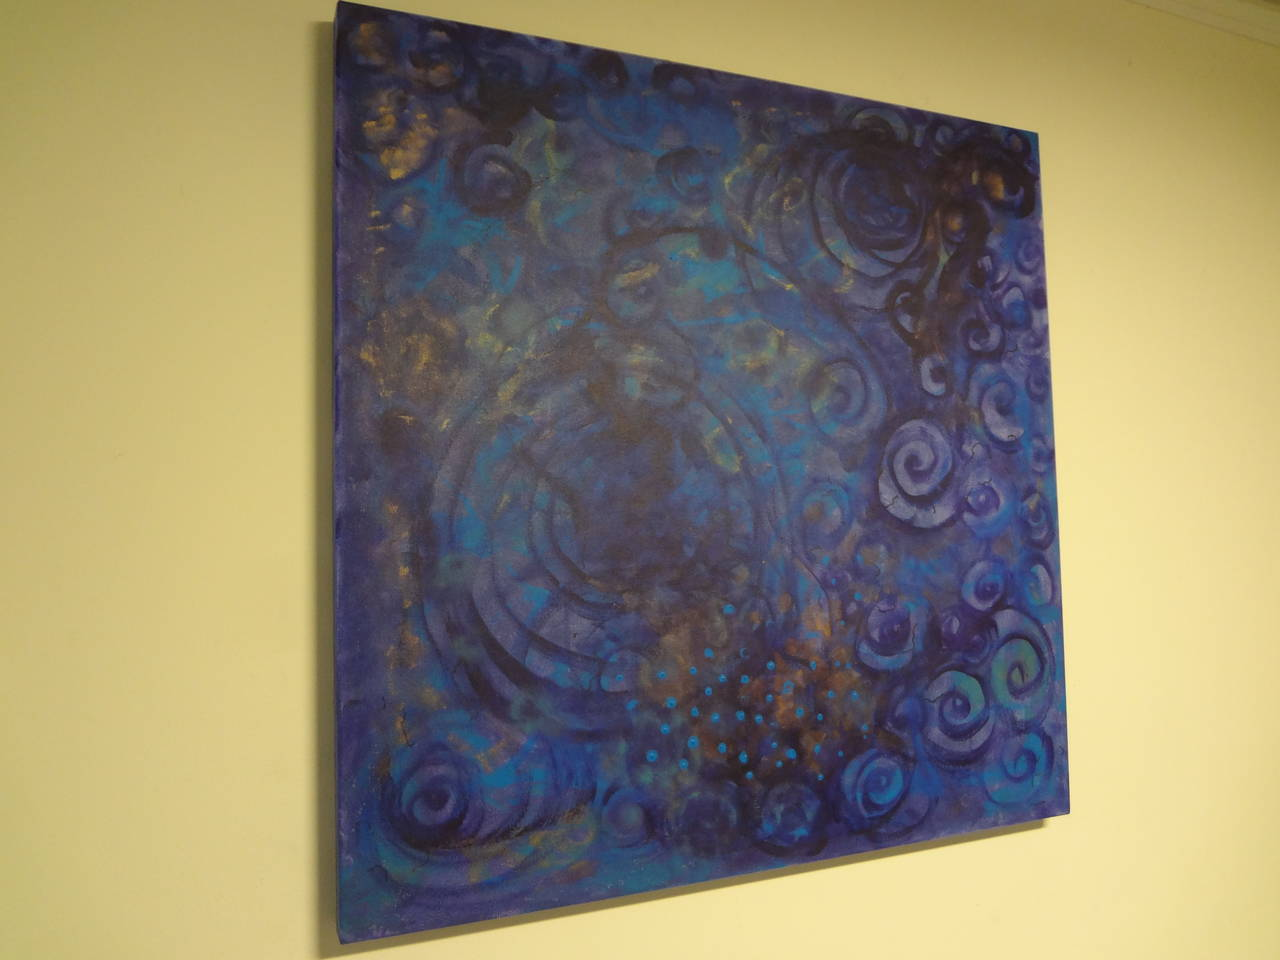 Abstract painting on canvas (Title: Dreaming) by Madrid Artist, Javier Barrionuevo.